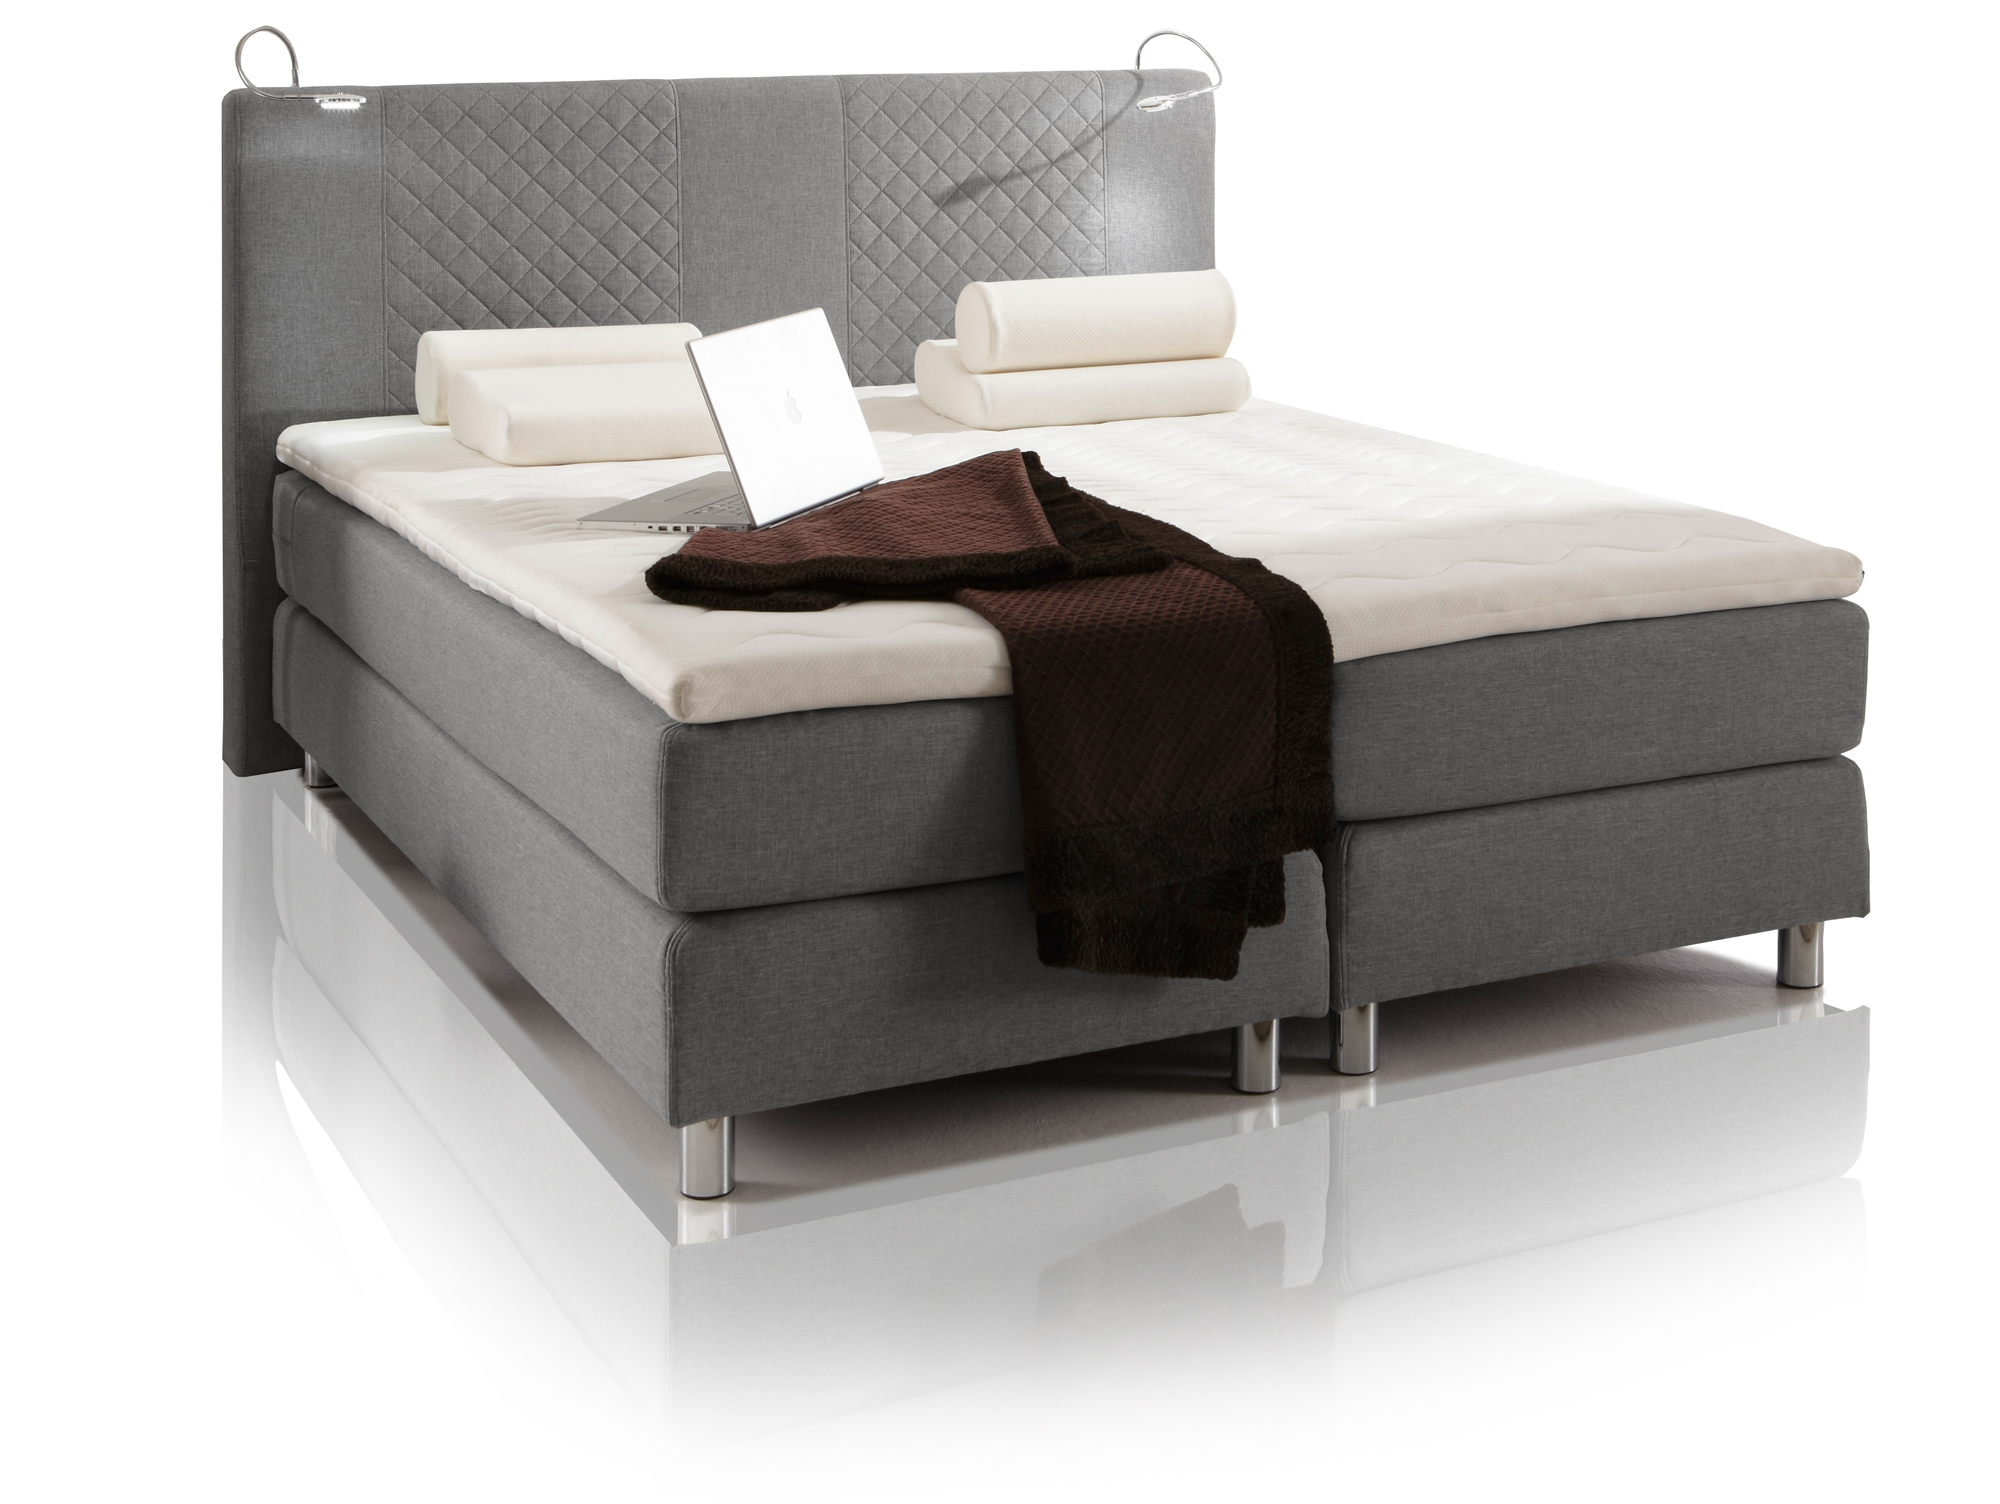 pasadena boxspringbett doppelbett 180 x 200 cm grau. Black Bedroom Furniture Sets. Home Design Ideas